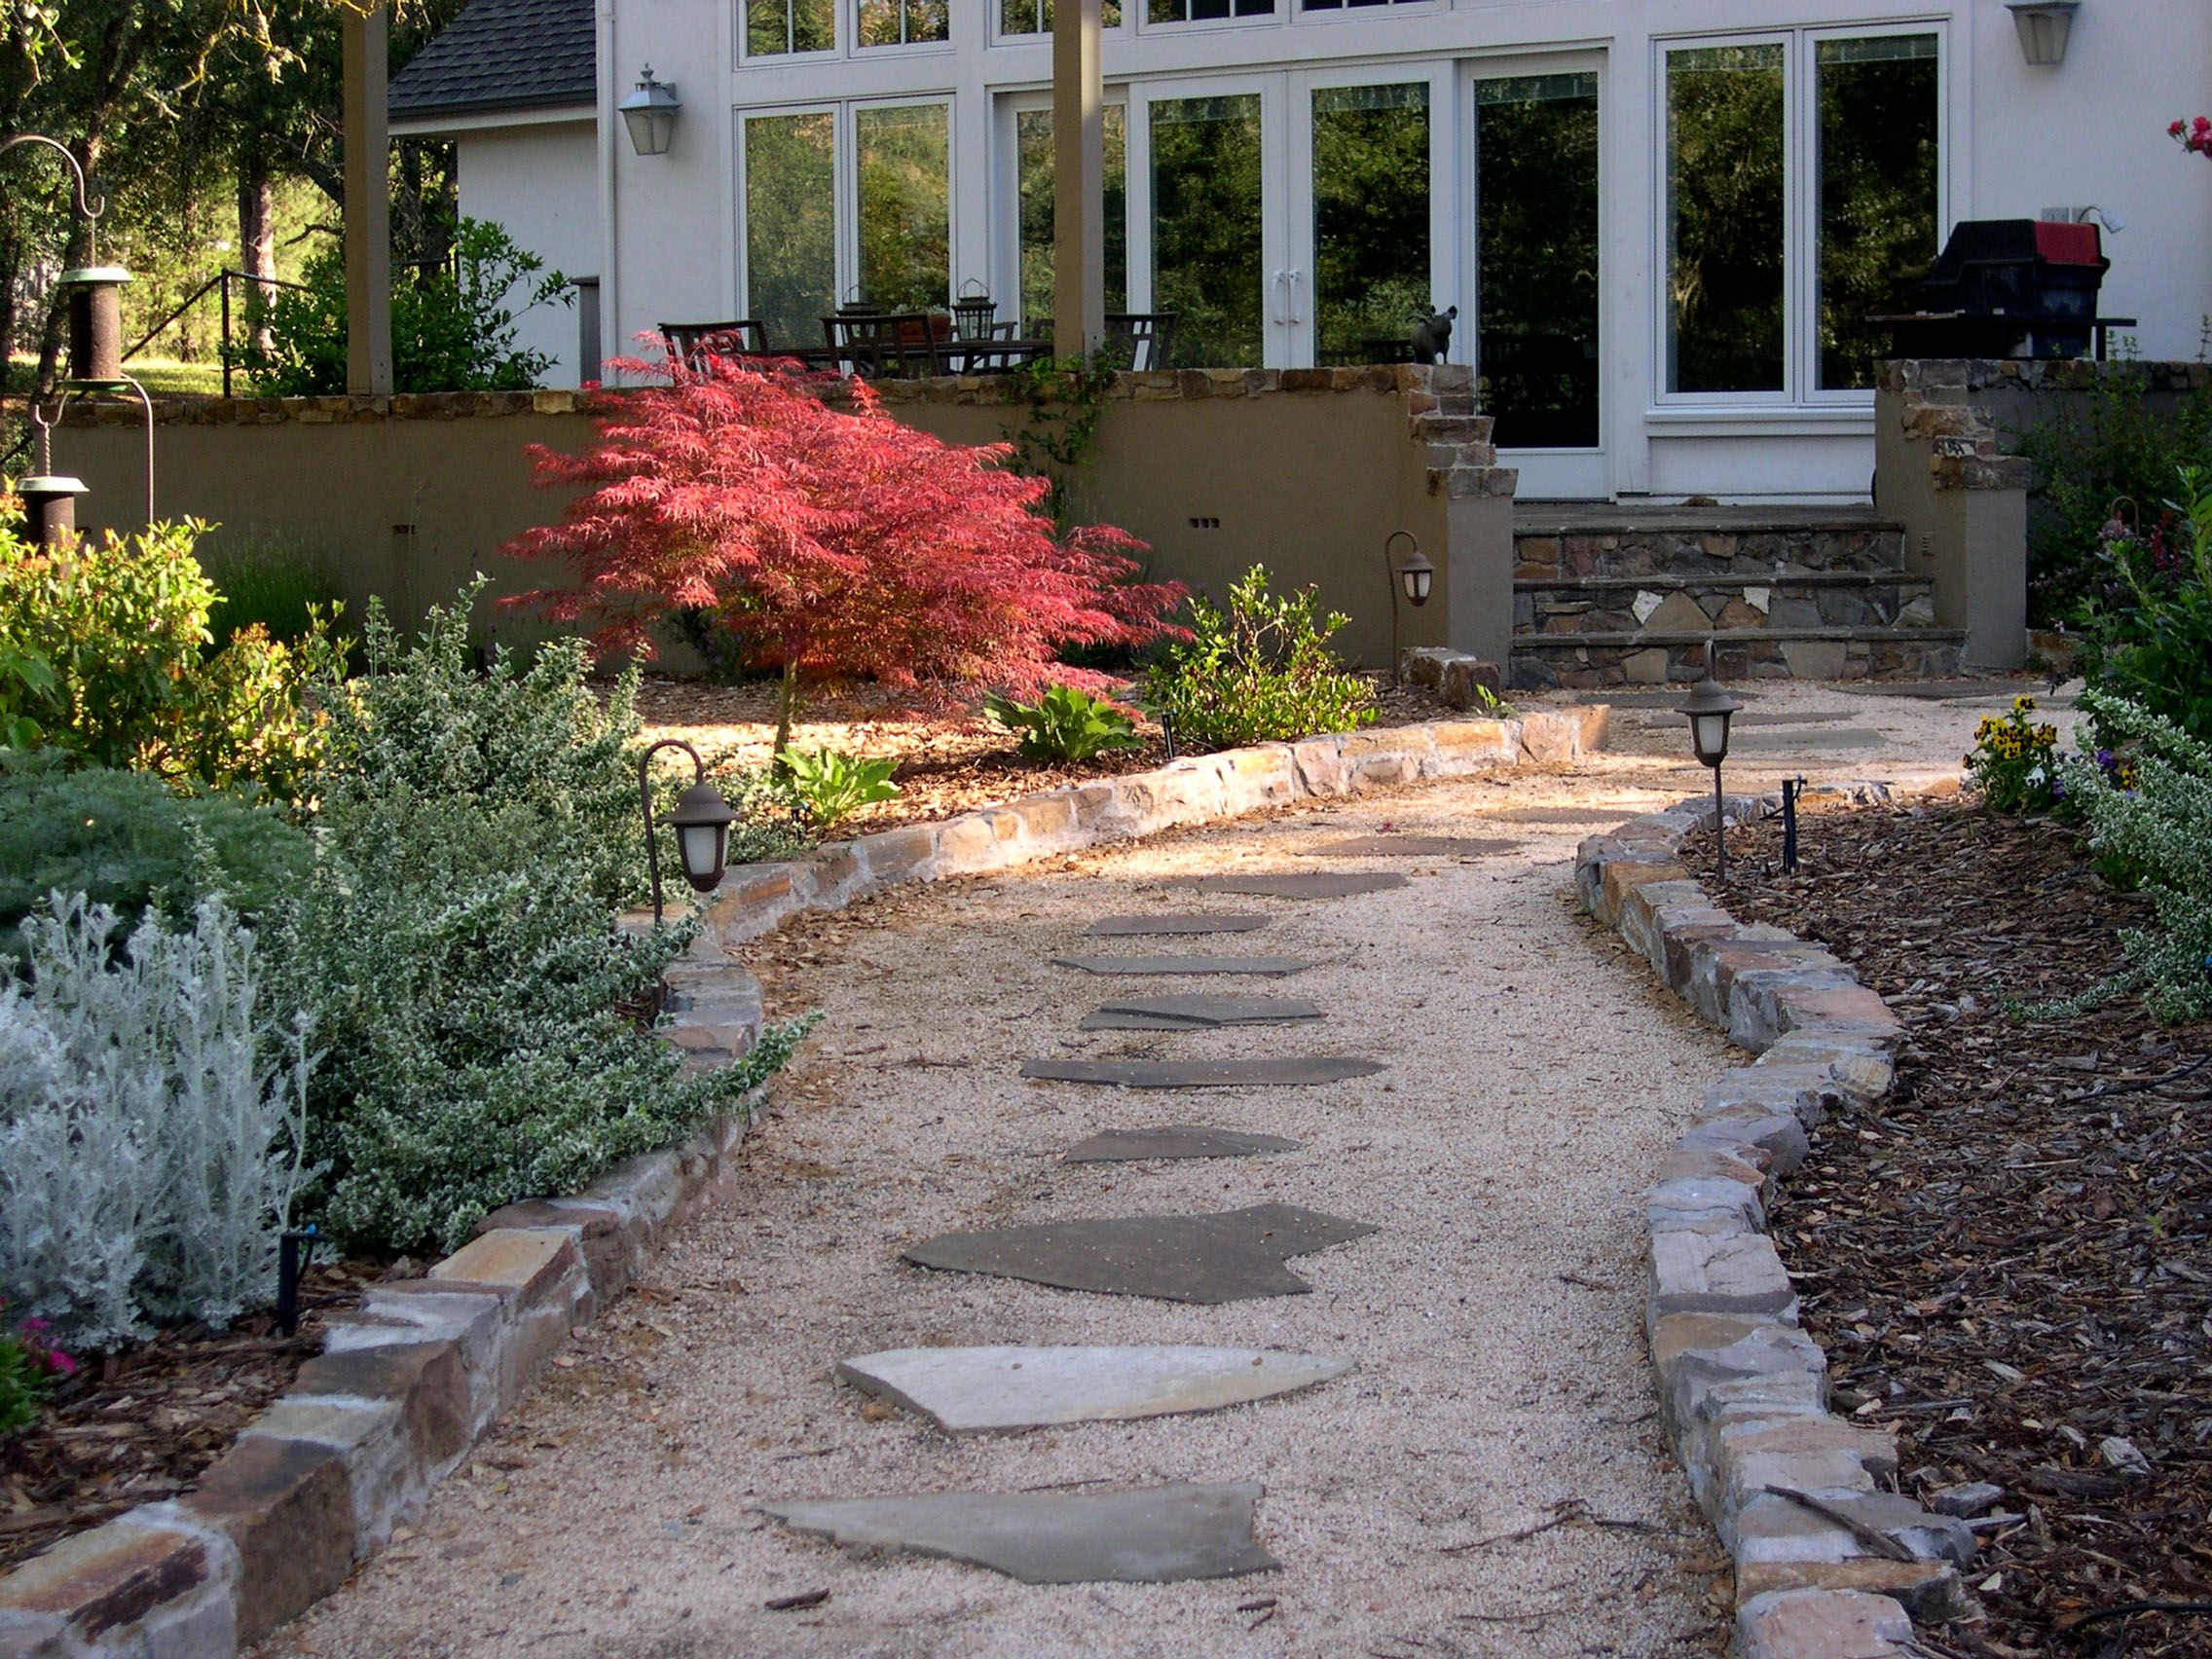 Blue Stone and Decomposed Granite Path | WALKWAYS AND ... on Decomposed Granite Backyard Ideas id=96623